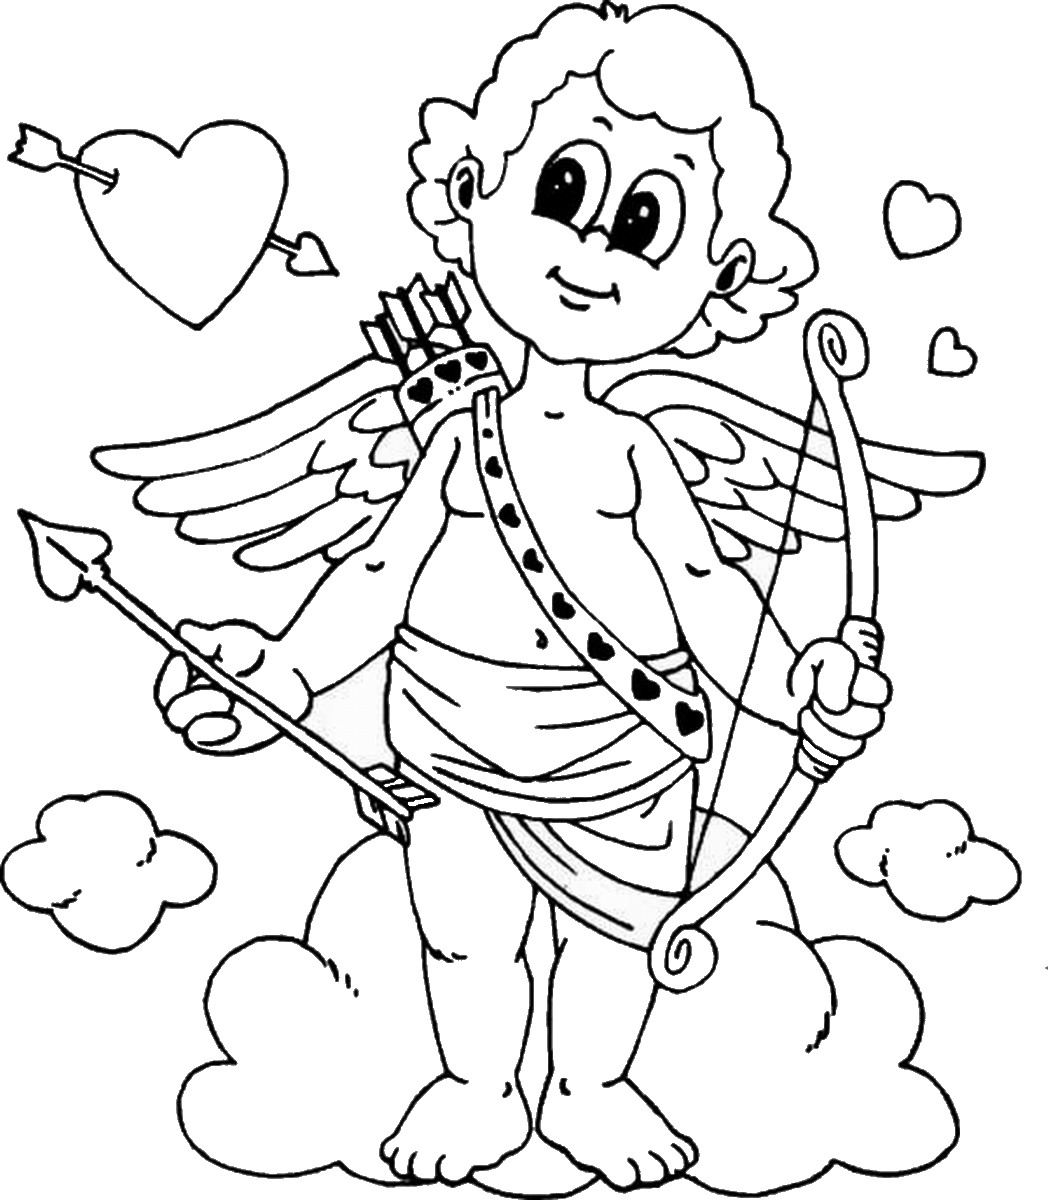 valentines coloring page valentines day coloring pages valentines page coloring